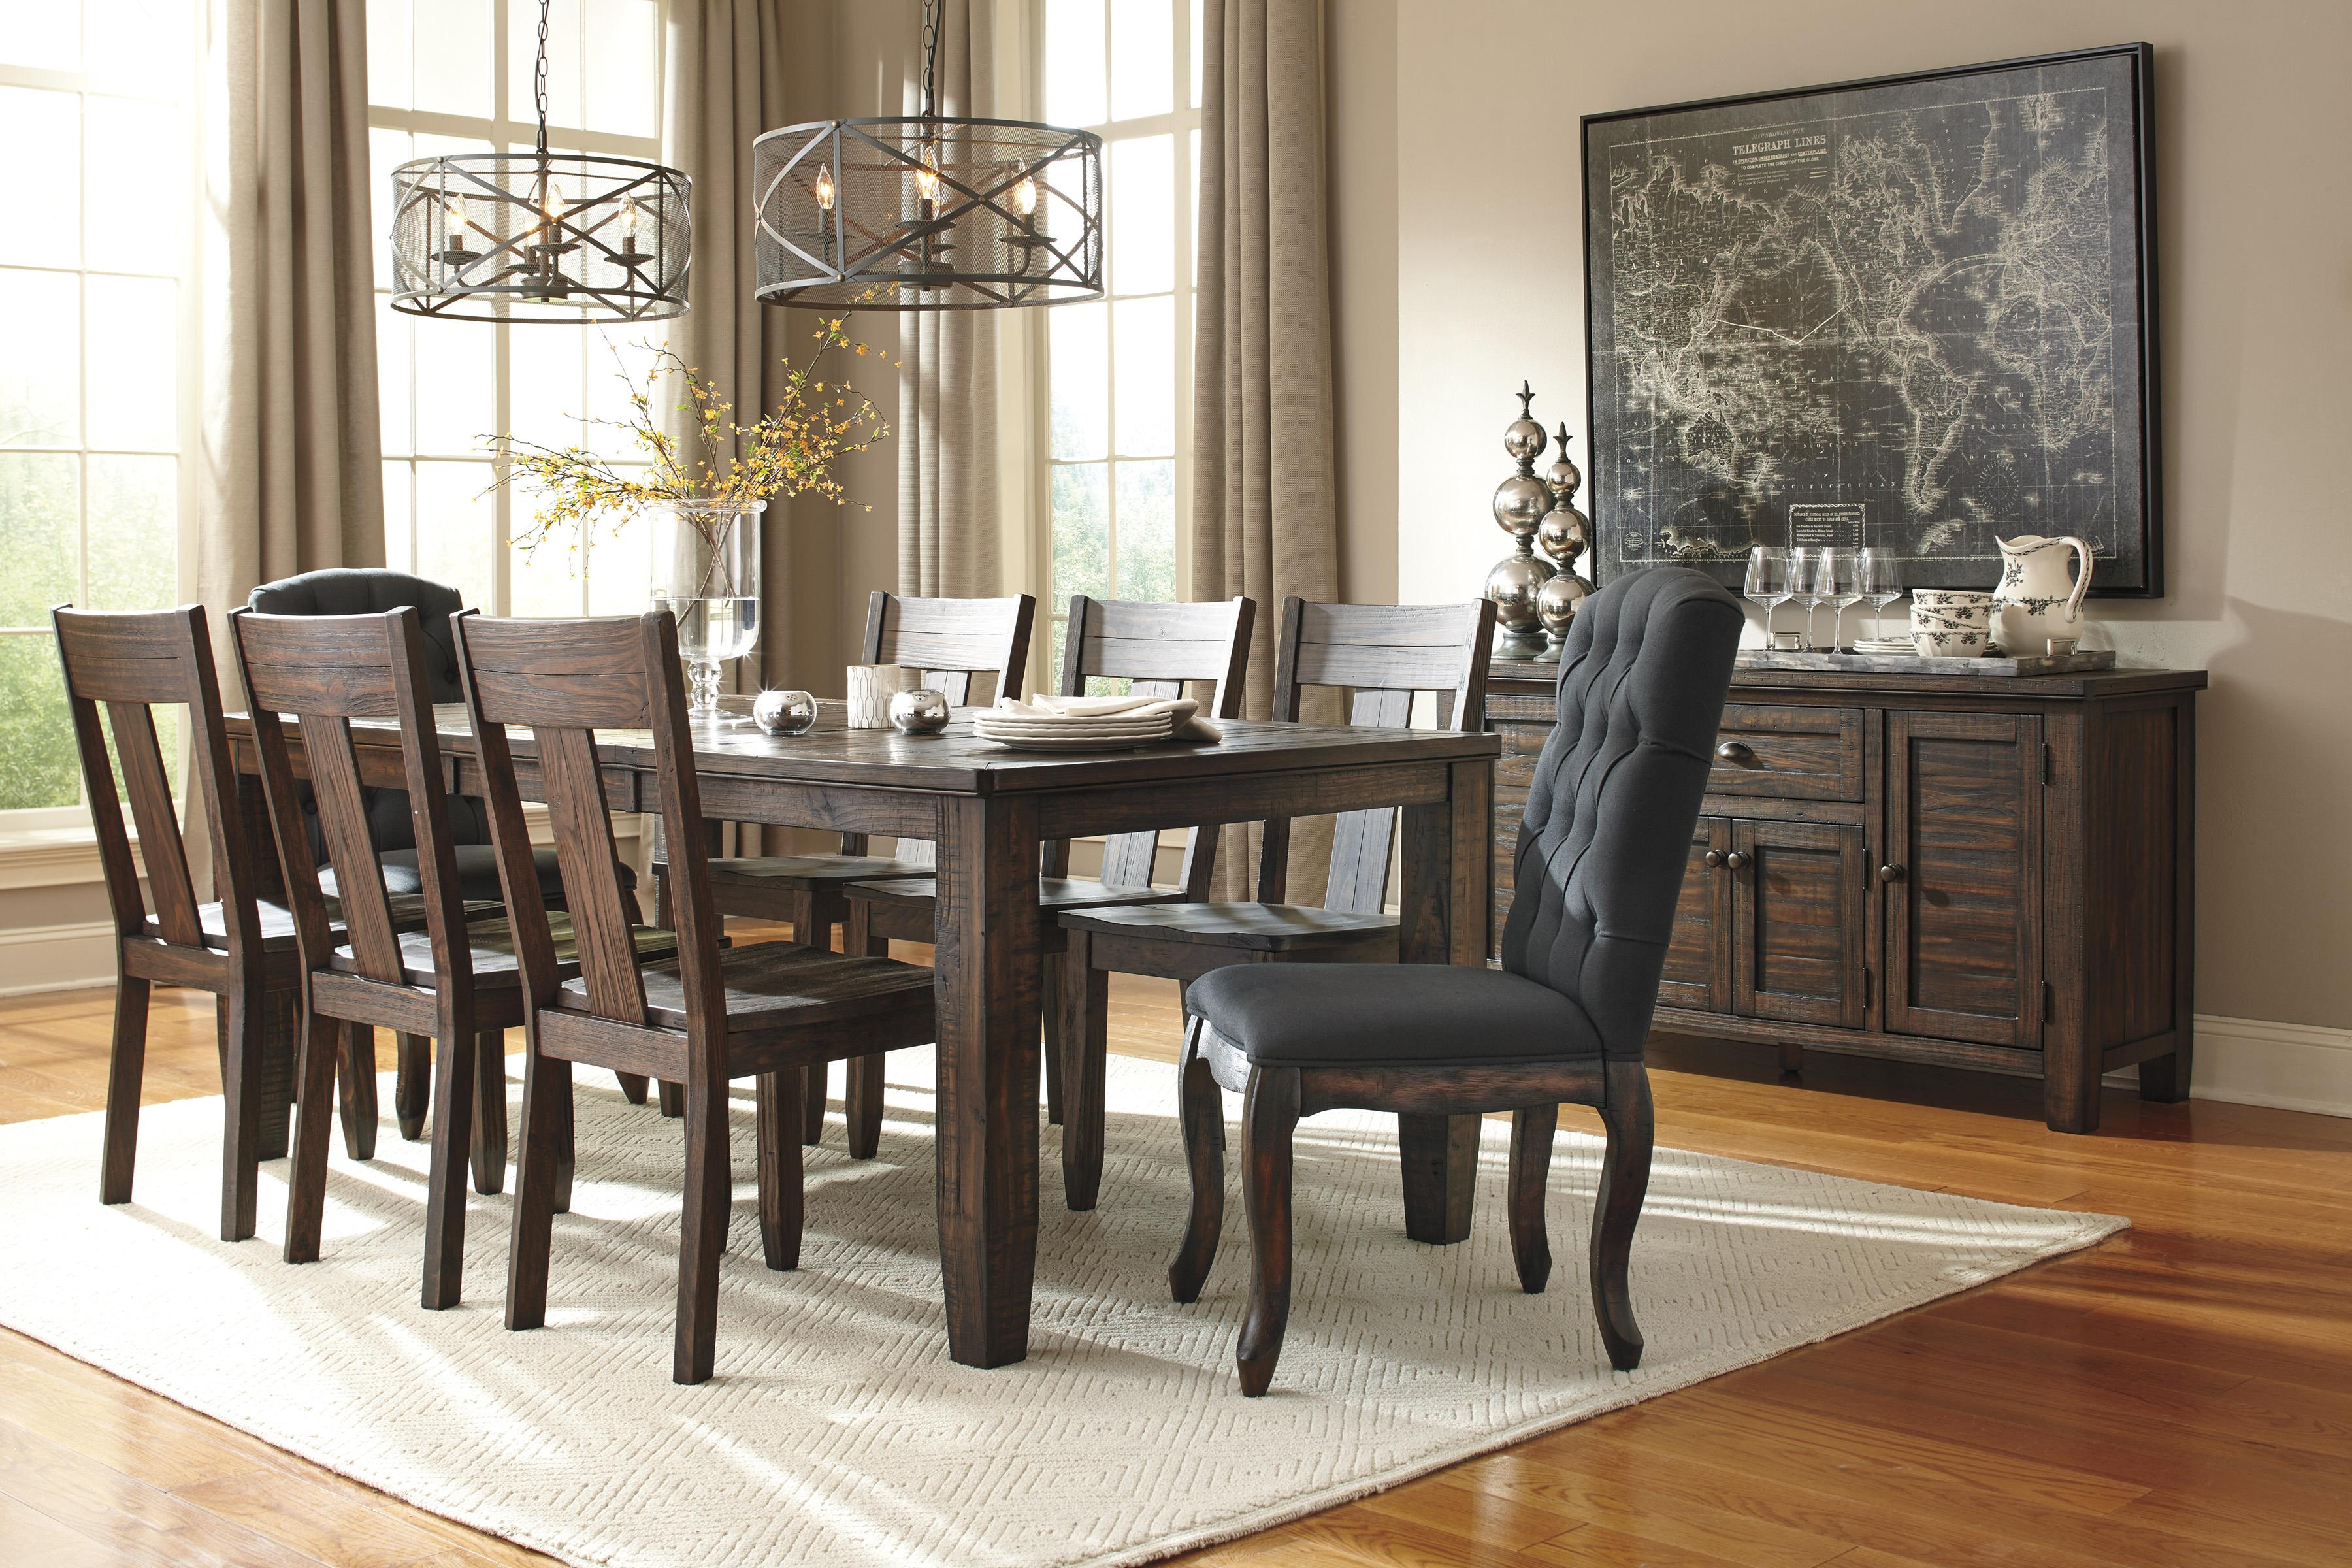 9 Piece Rectangular Dining Table Set with Upholstered